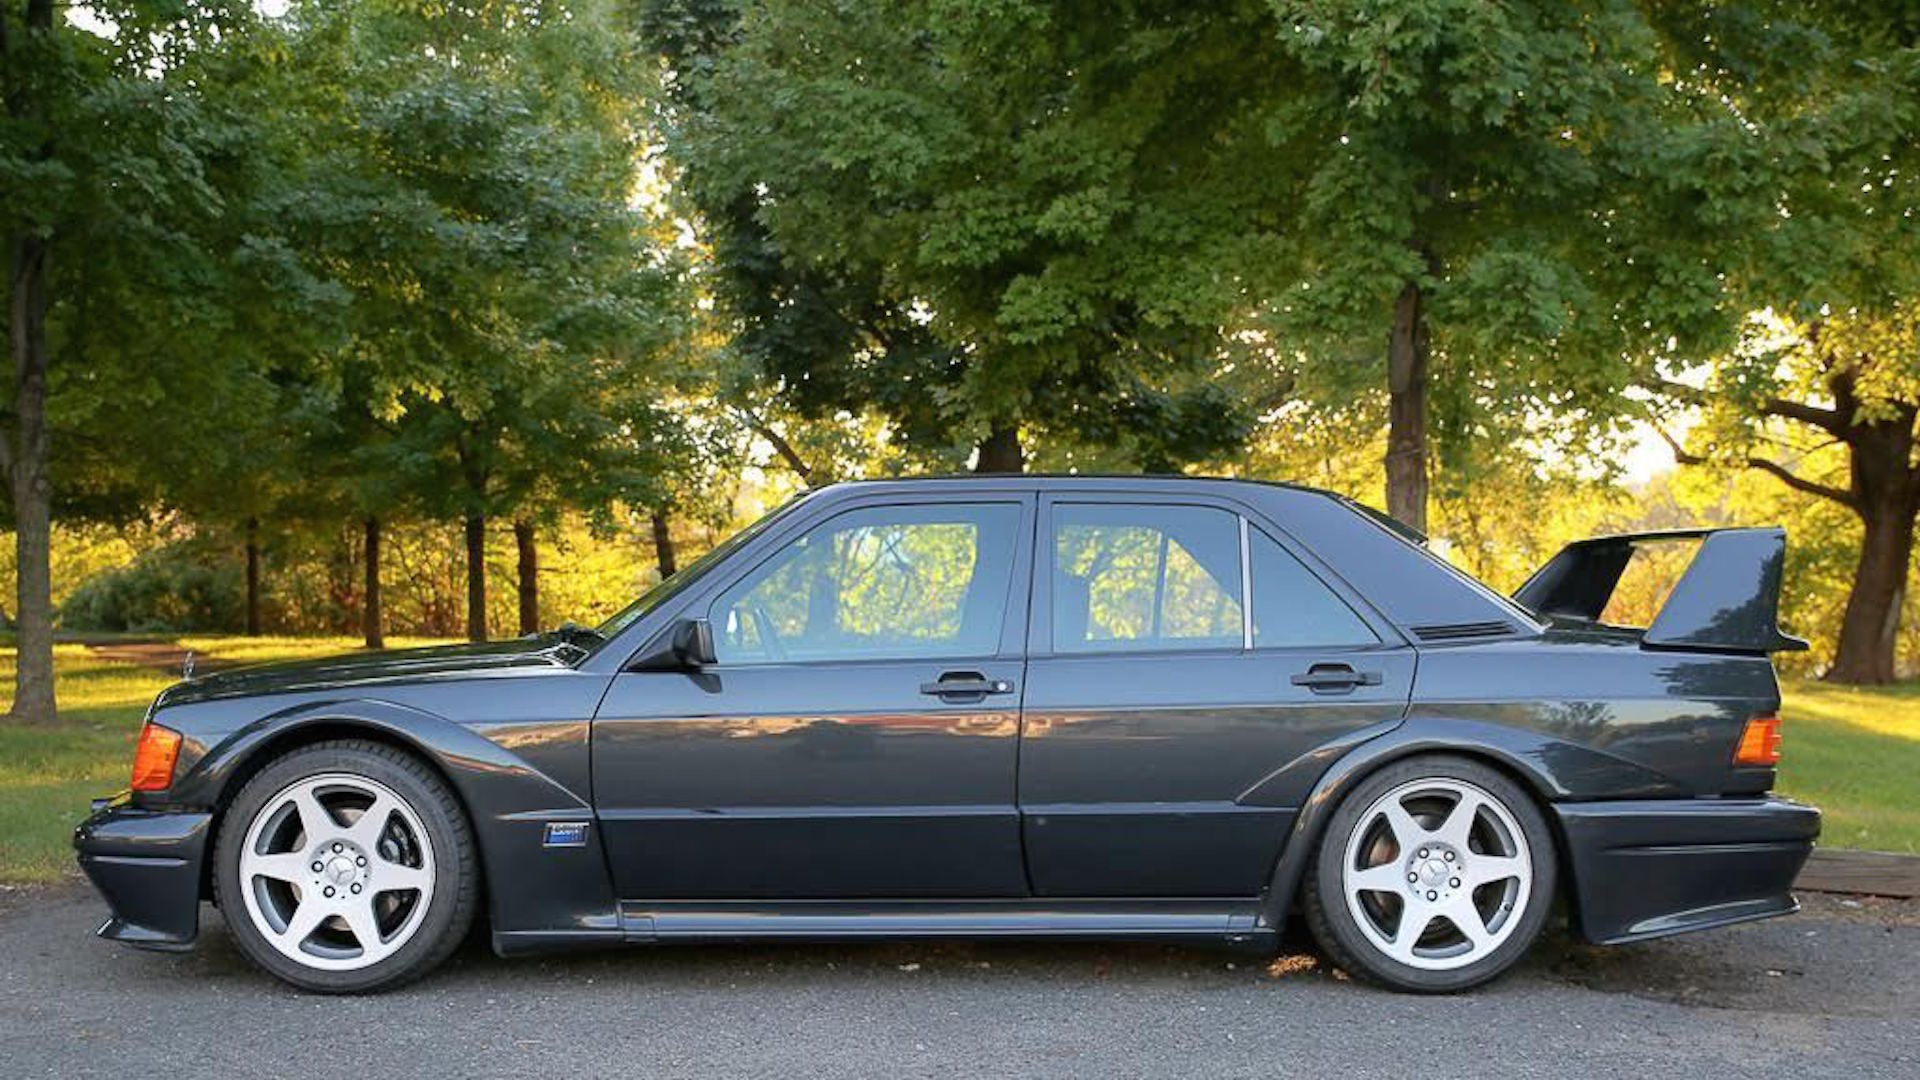 1990 mercedes benz 190e cosworth evo ii on ebay with for Mercedes benz 1990